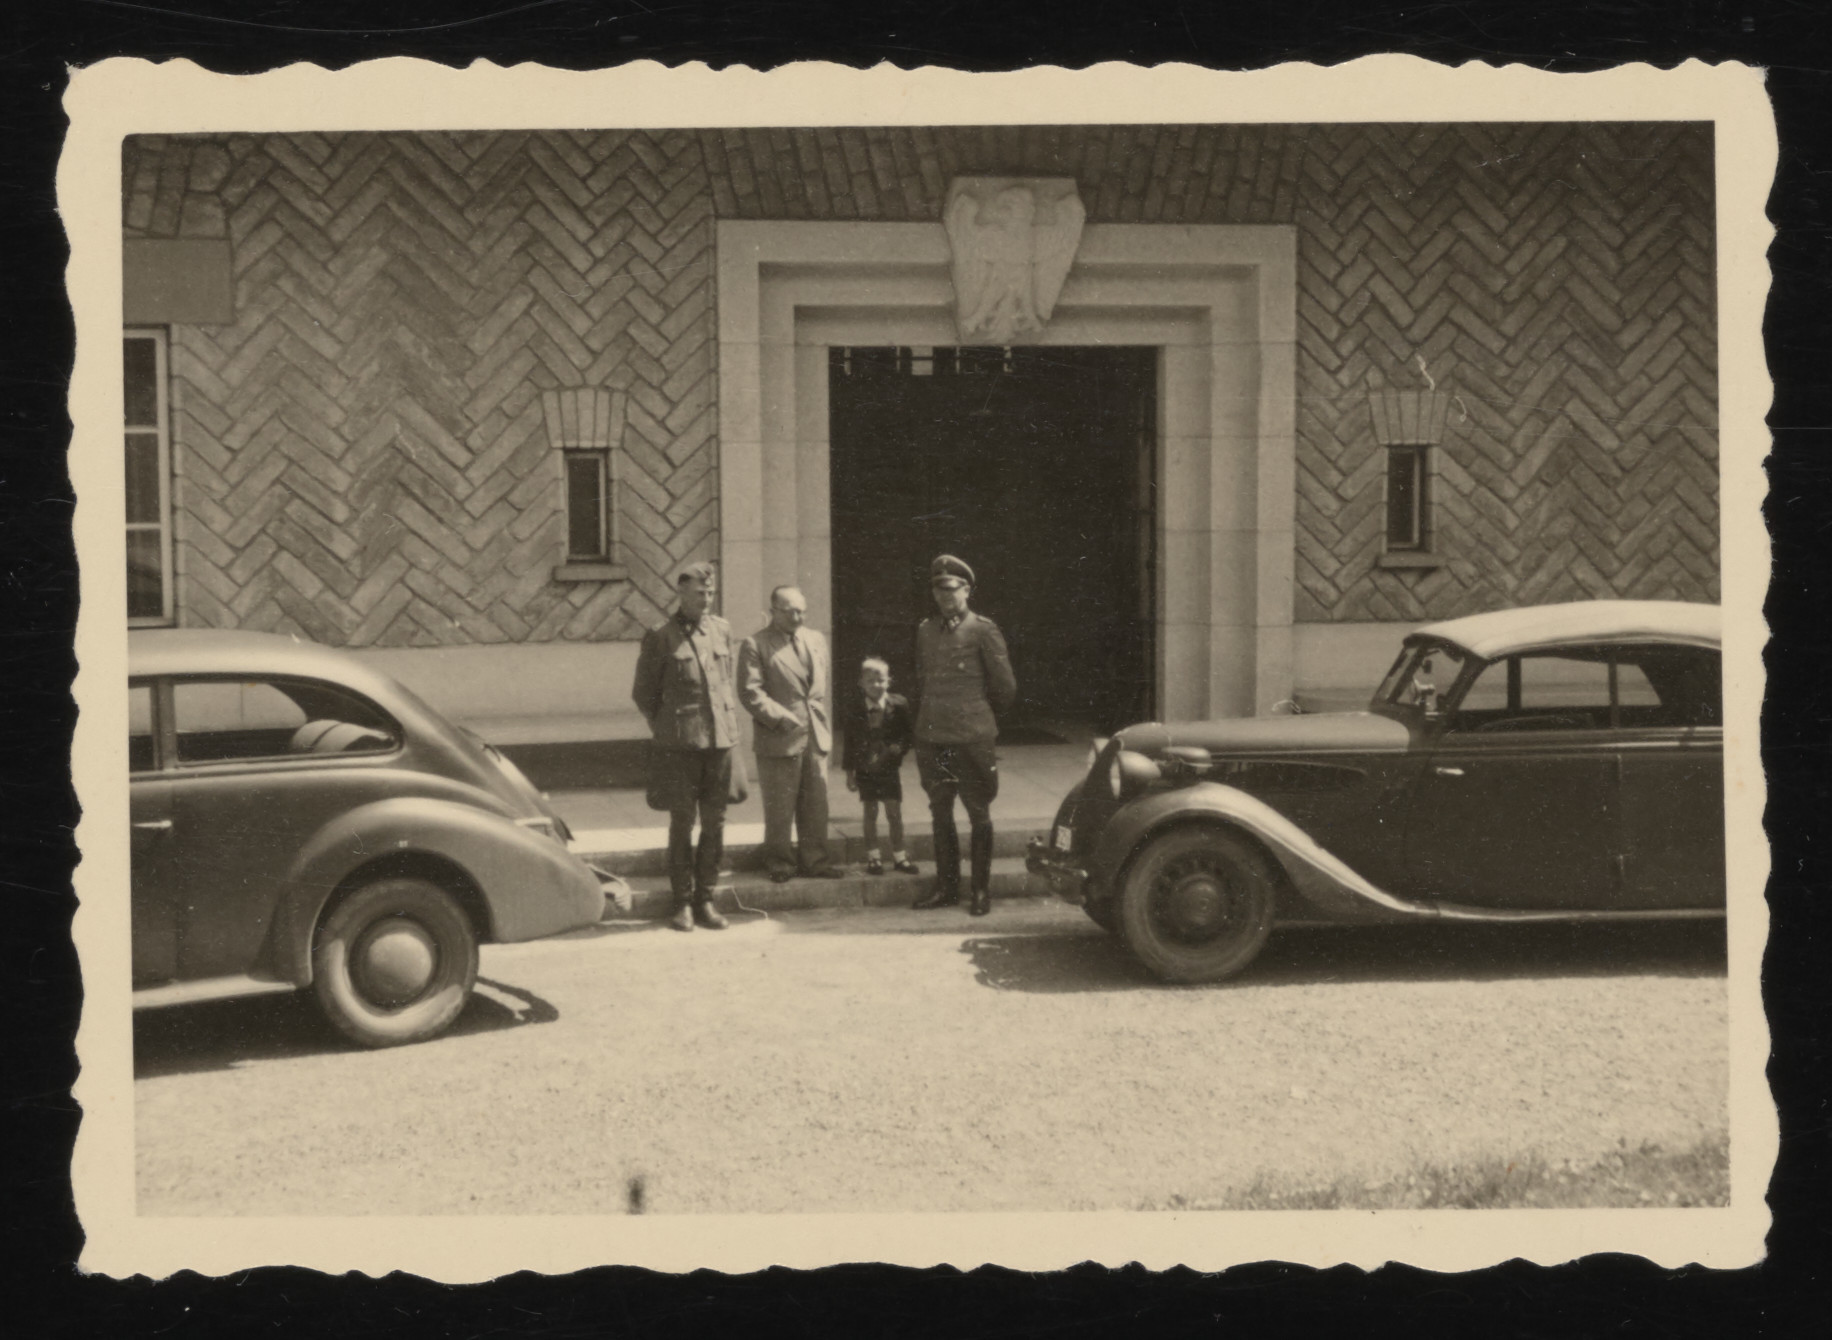 Dr. Eduard Wirths and Prof. Carl Clauberg visit the presidential palace in Wisla.    Standing between them is one of the sons of Rudolf Hoess.